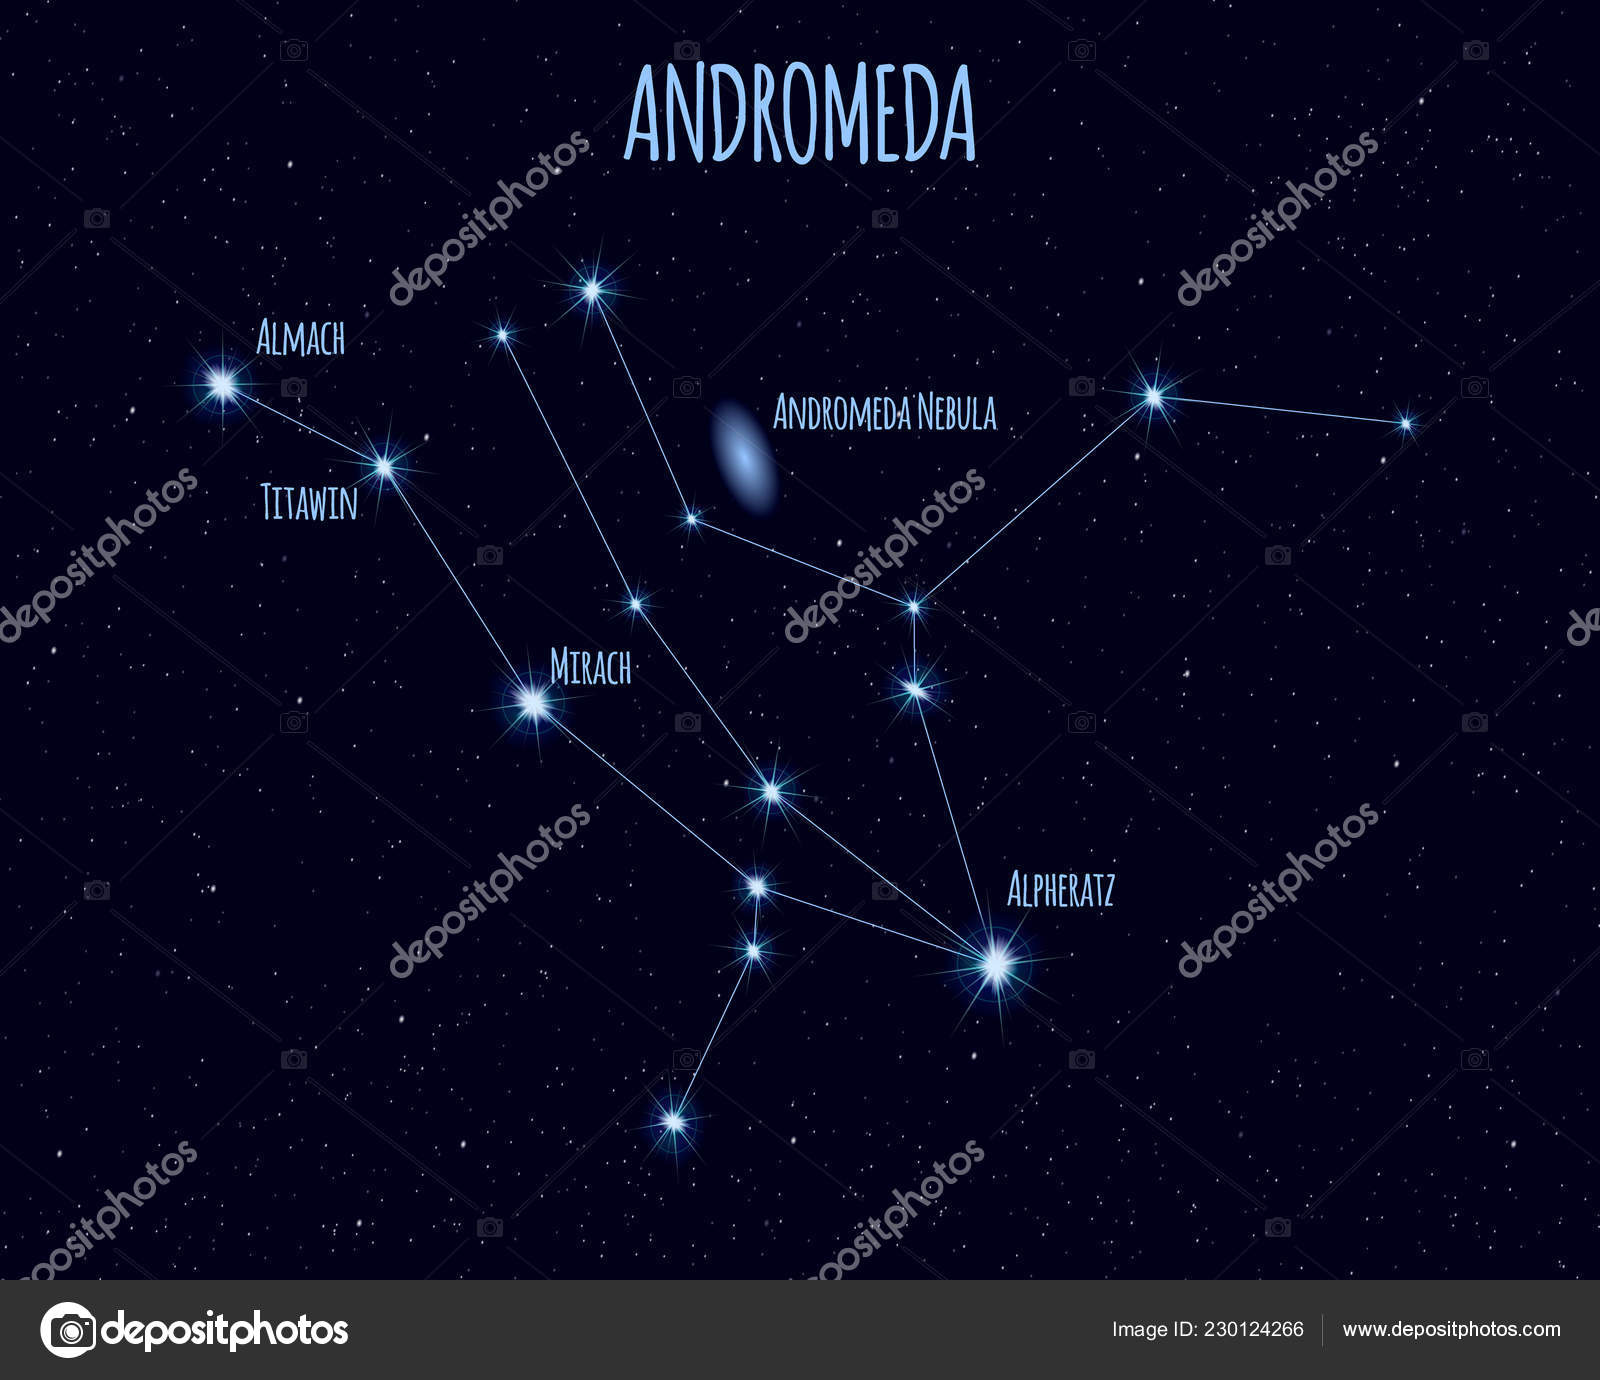 The Andromeda Constellation Guide